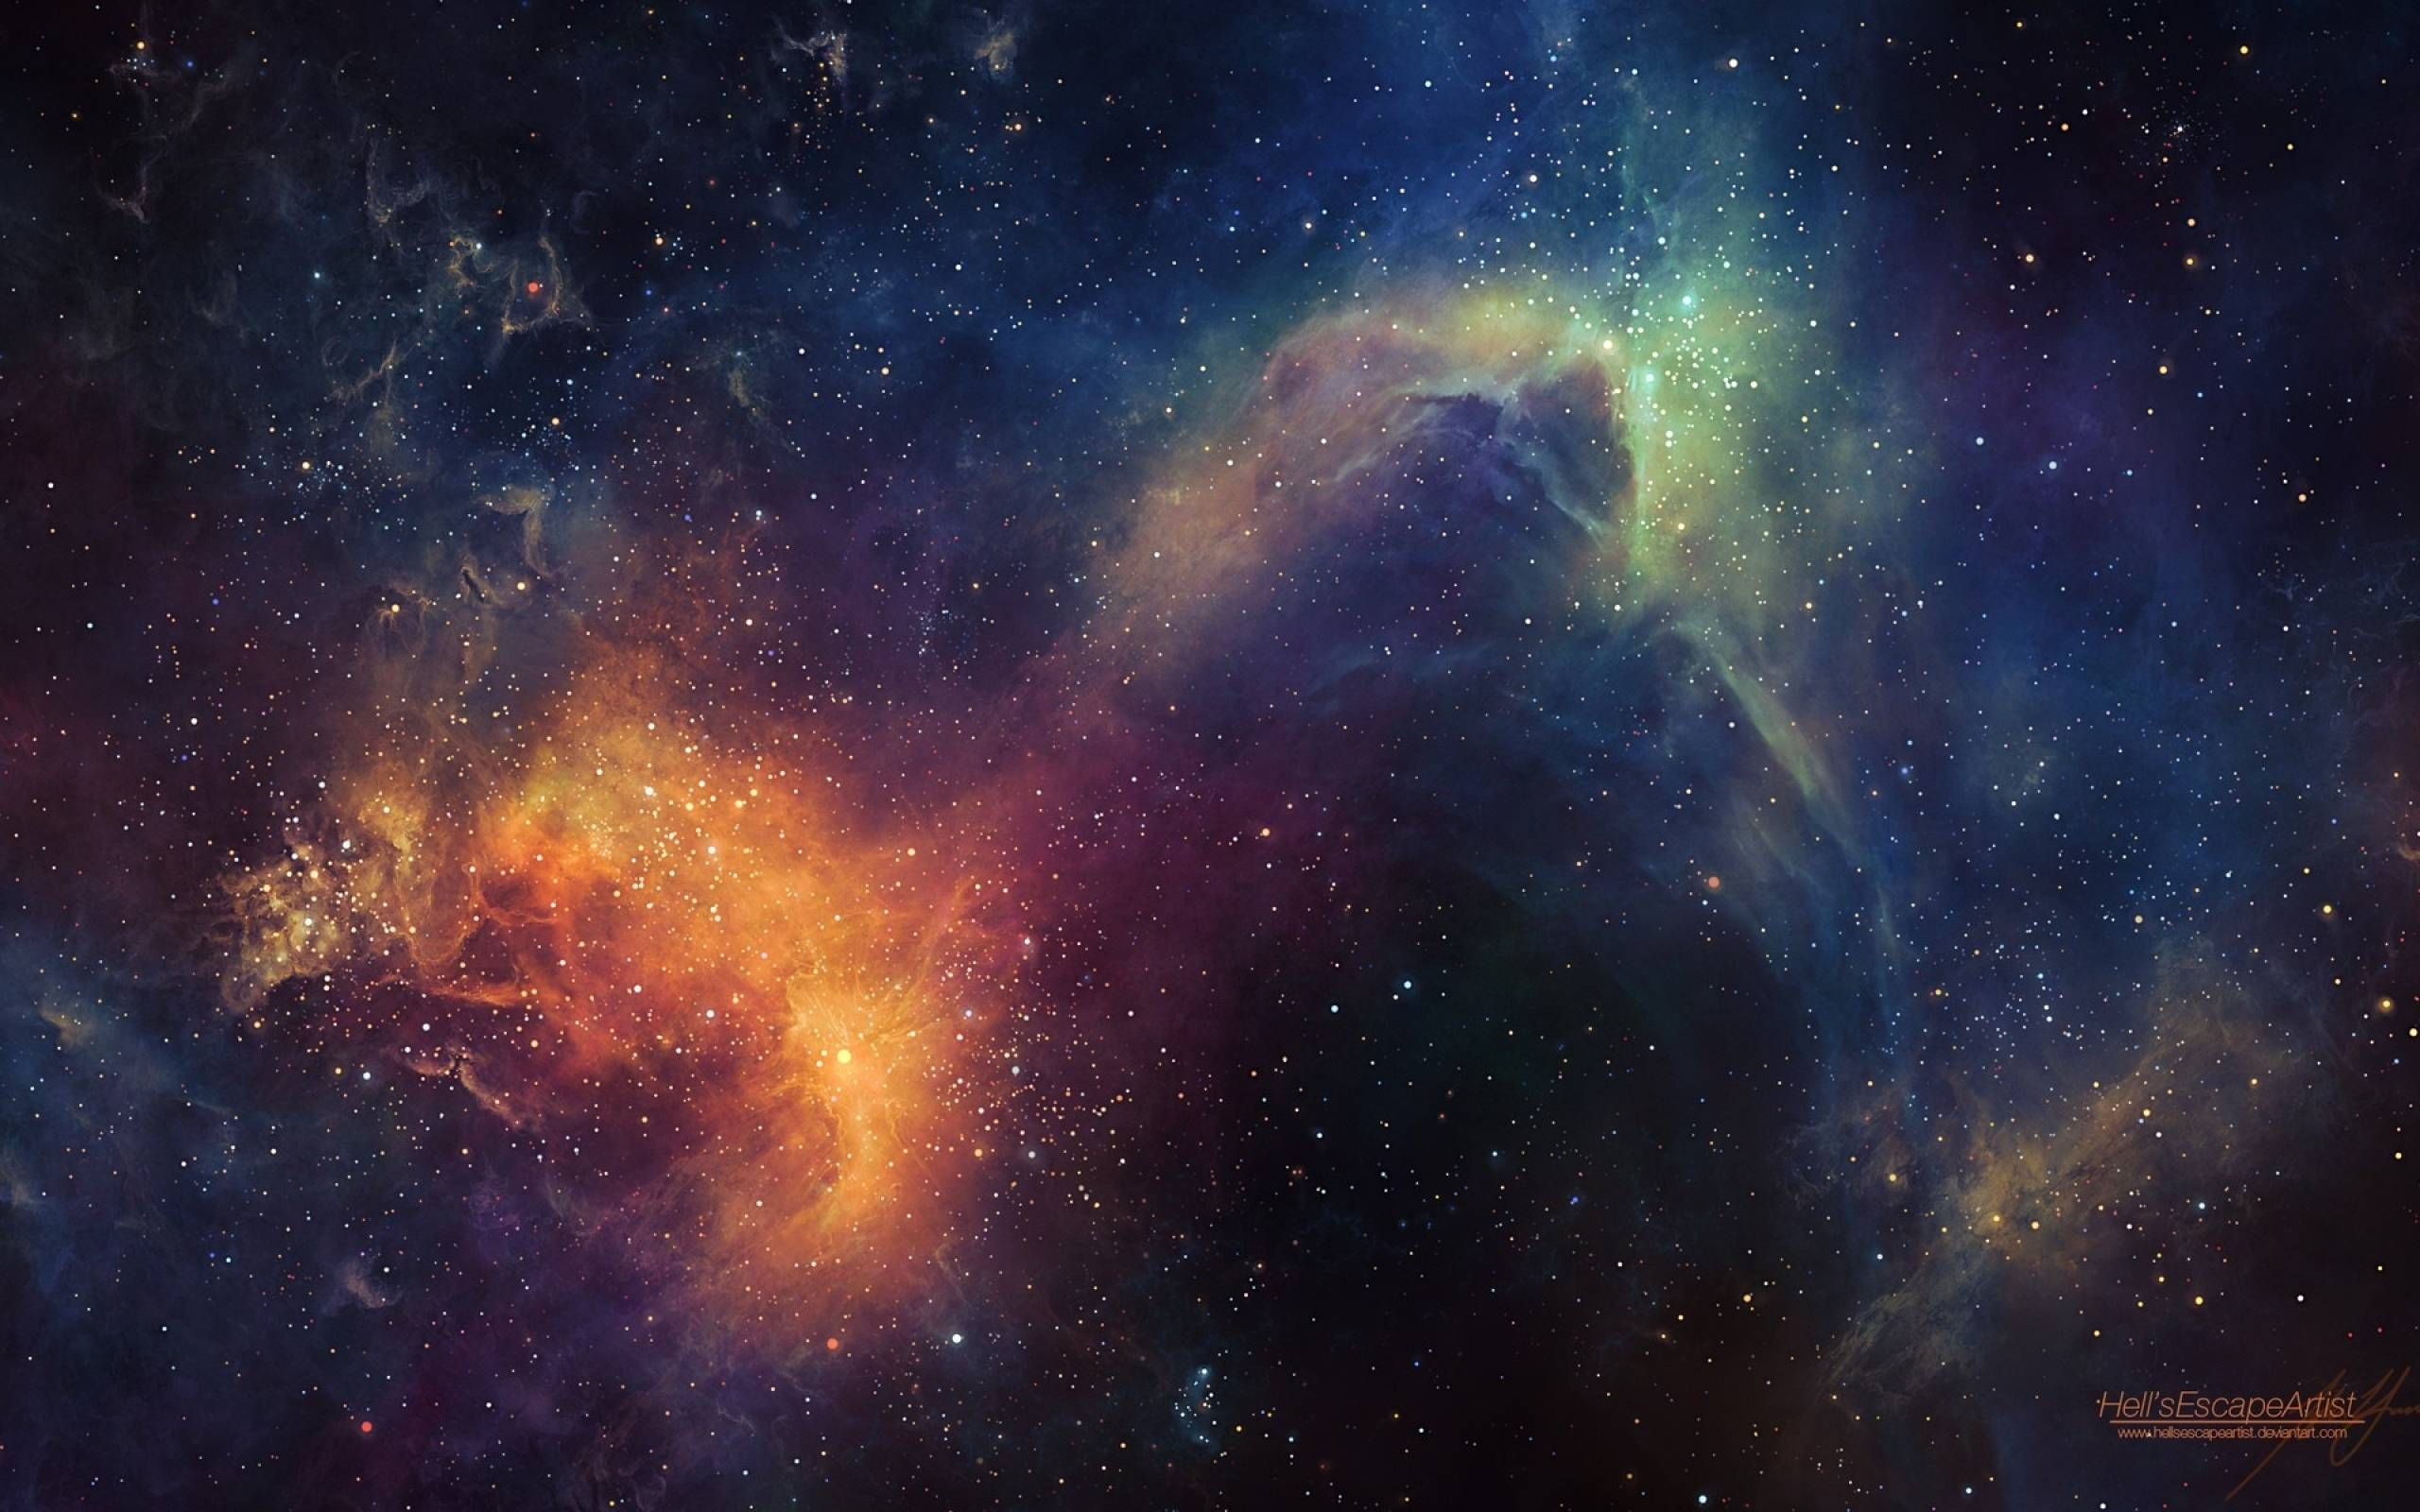 2560x1600px outer space backgrounds - wallpapersafari